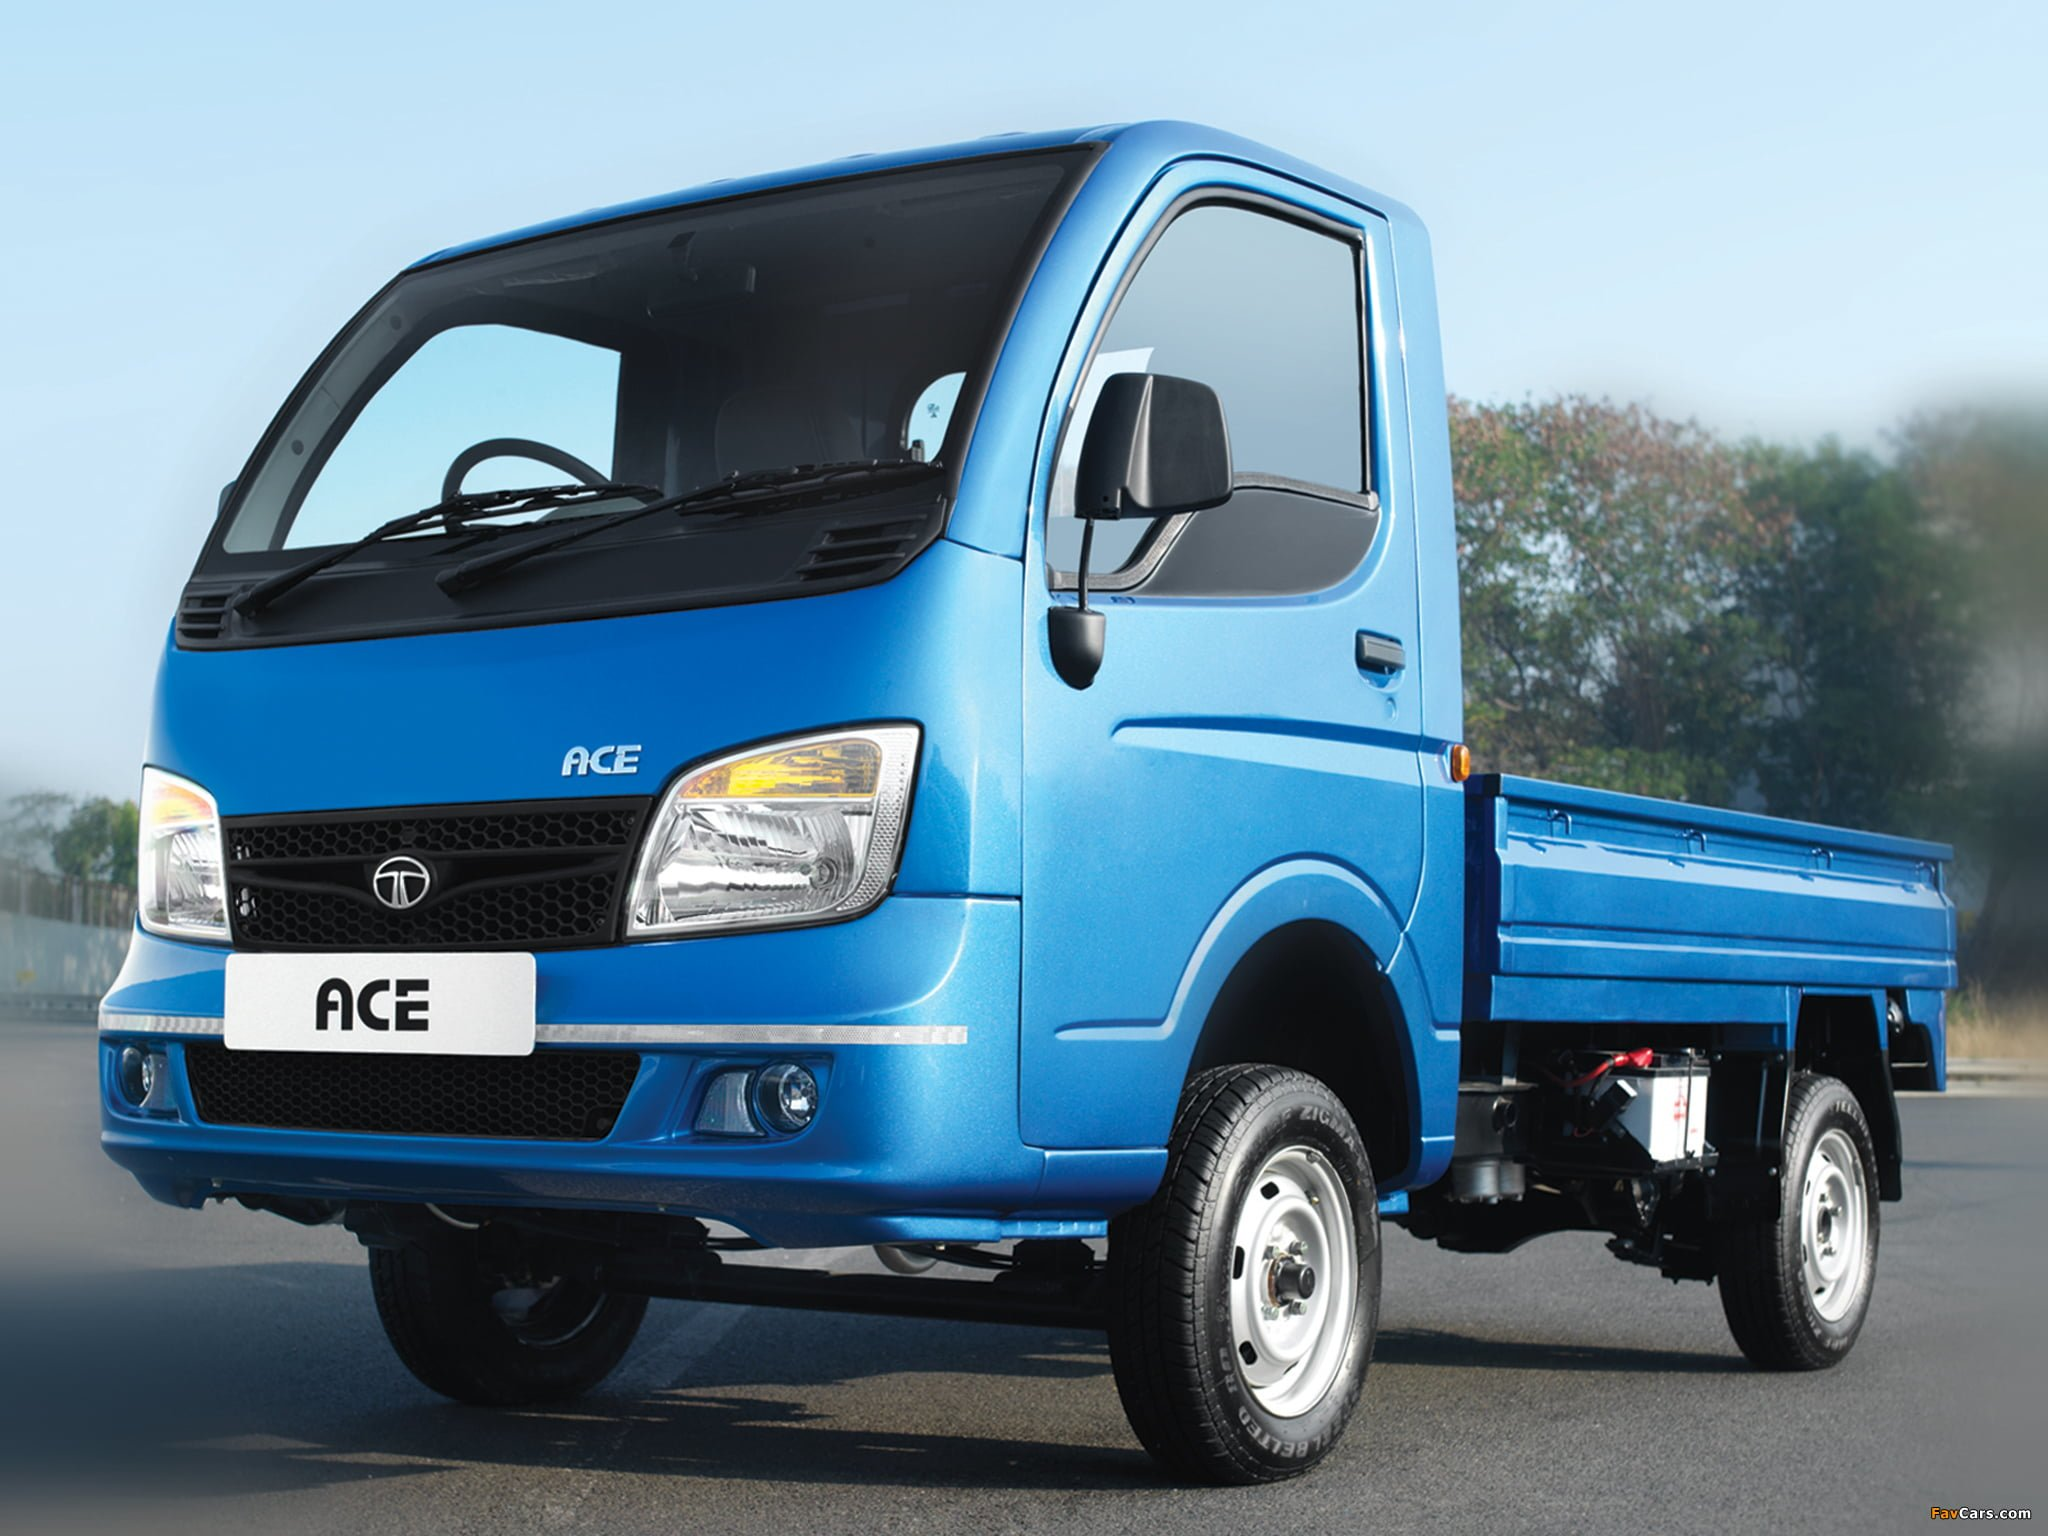 Tata Motors To Launch About 50 CV Models By March 2014